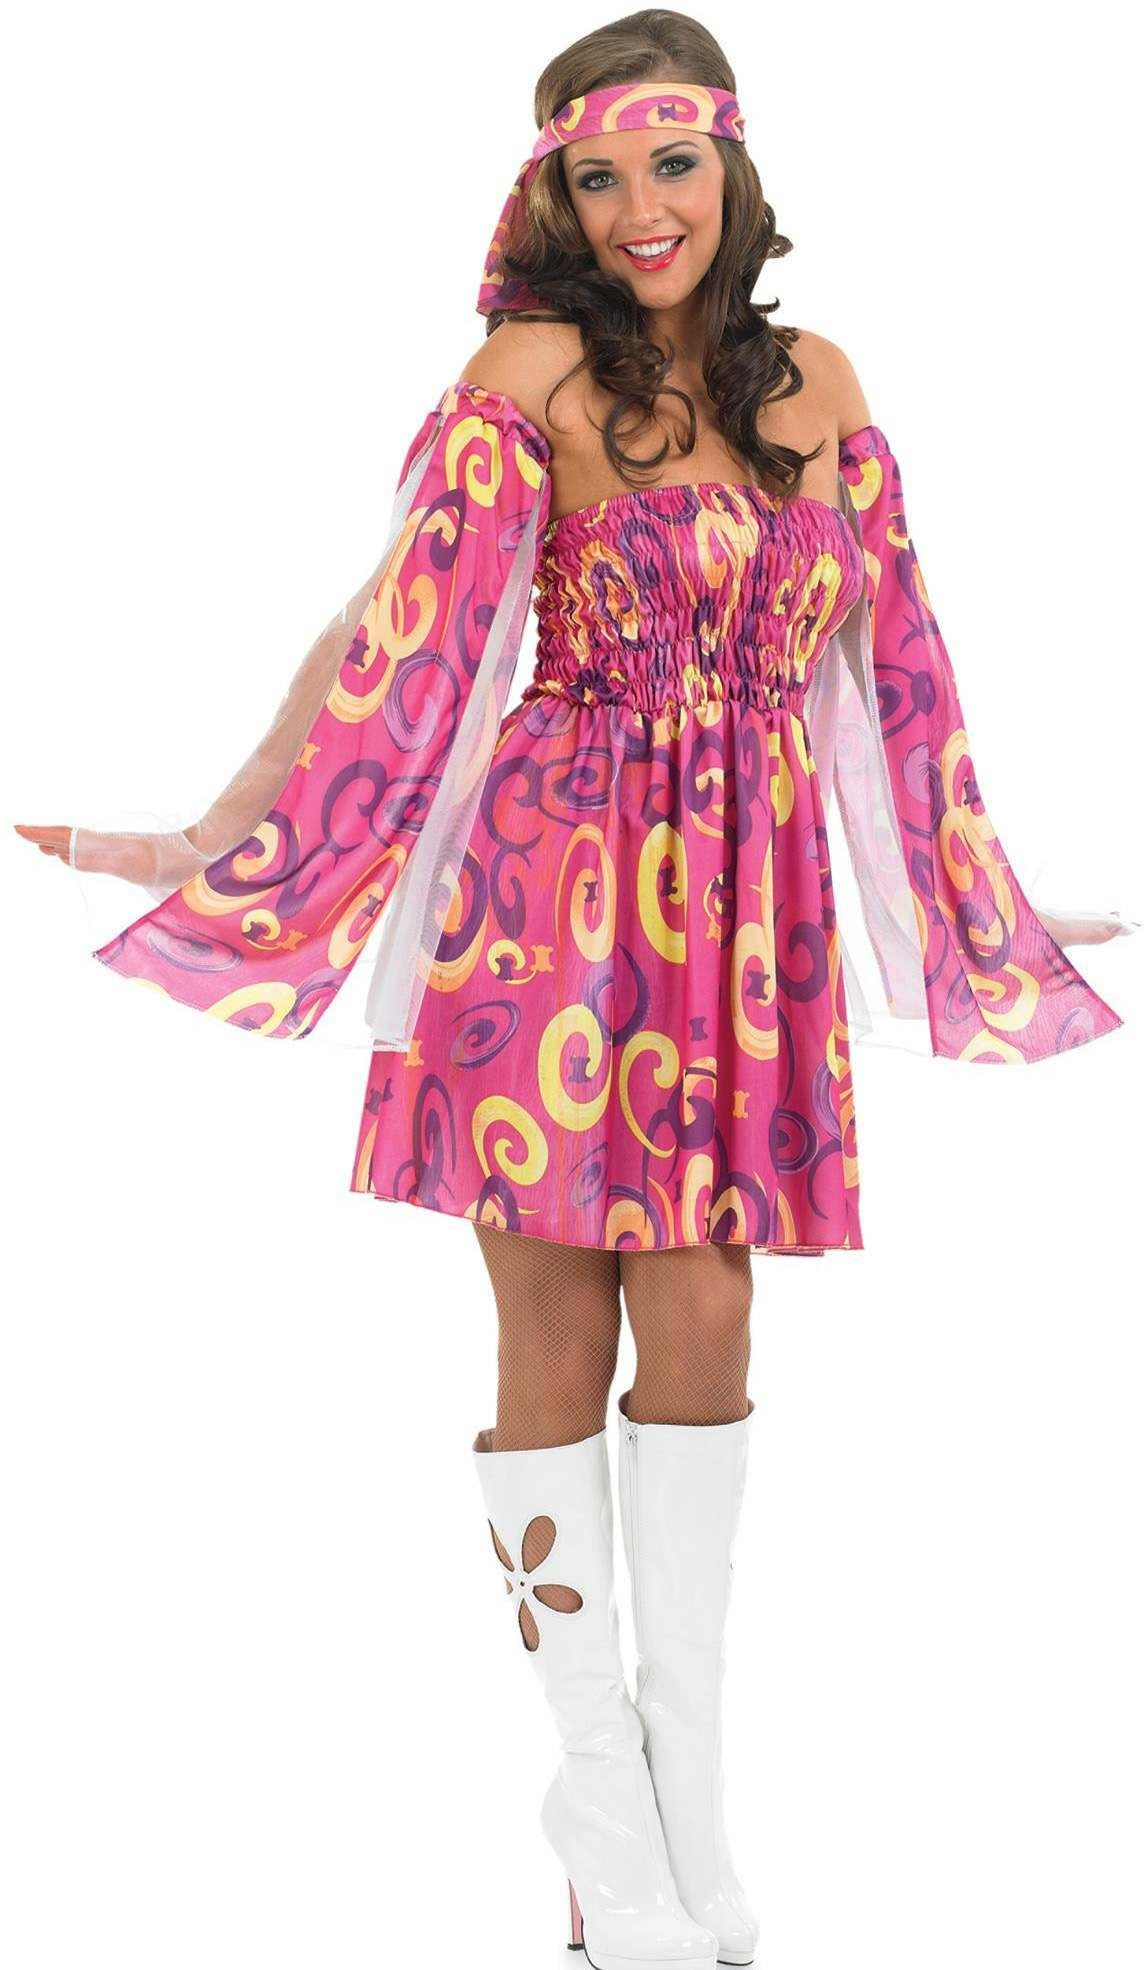 Ladies 60S Swirl Dress Pirates Outfit - (Pink)